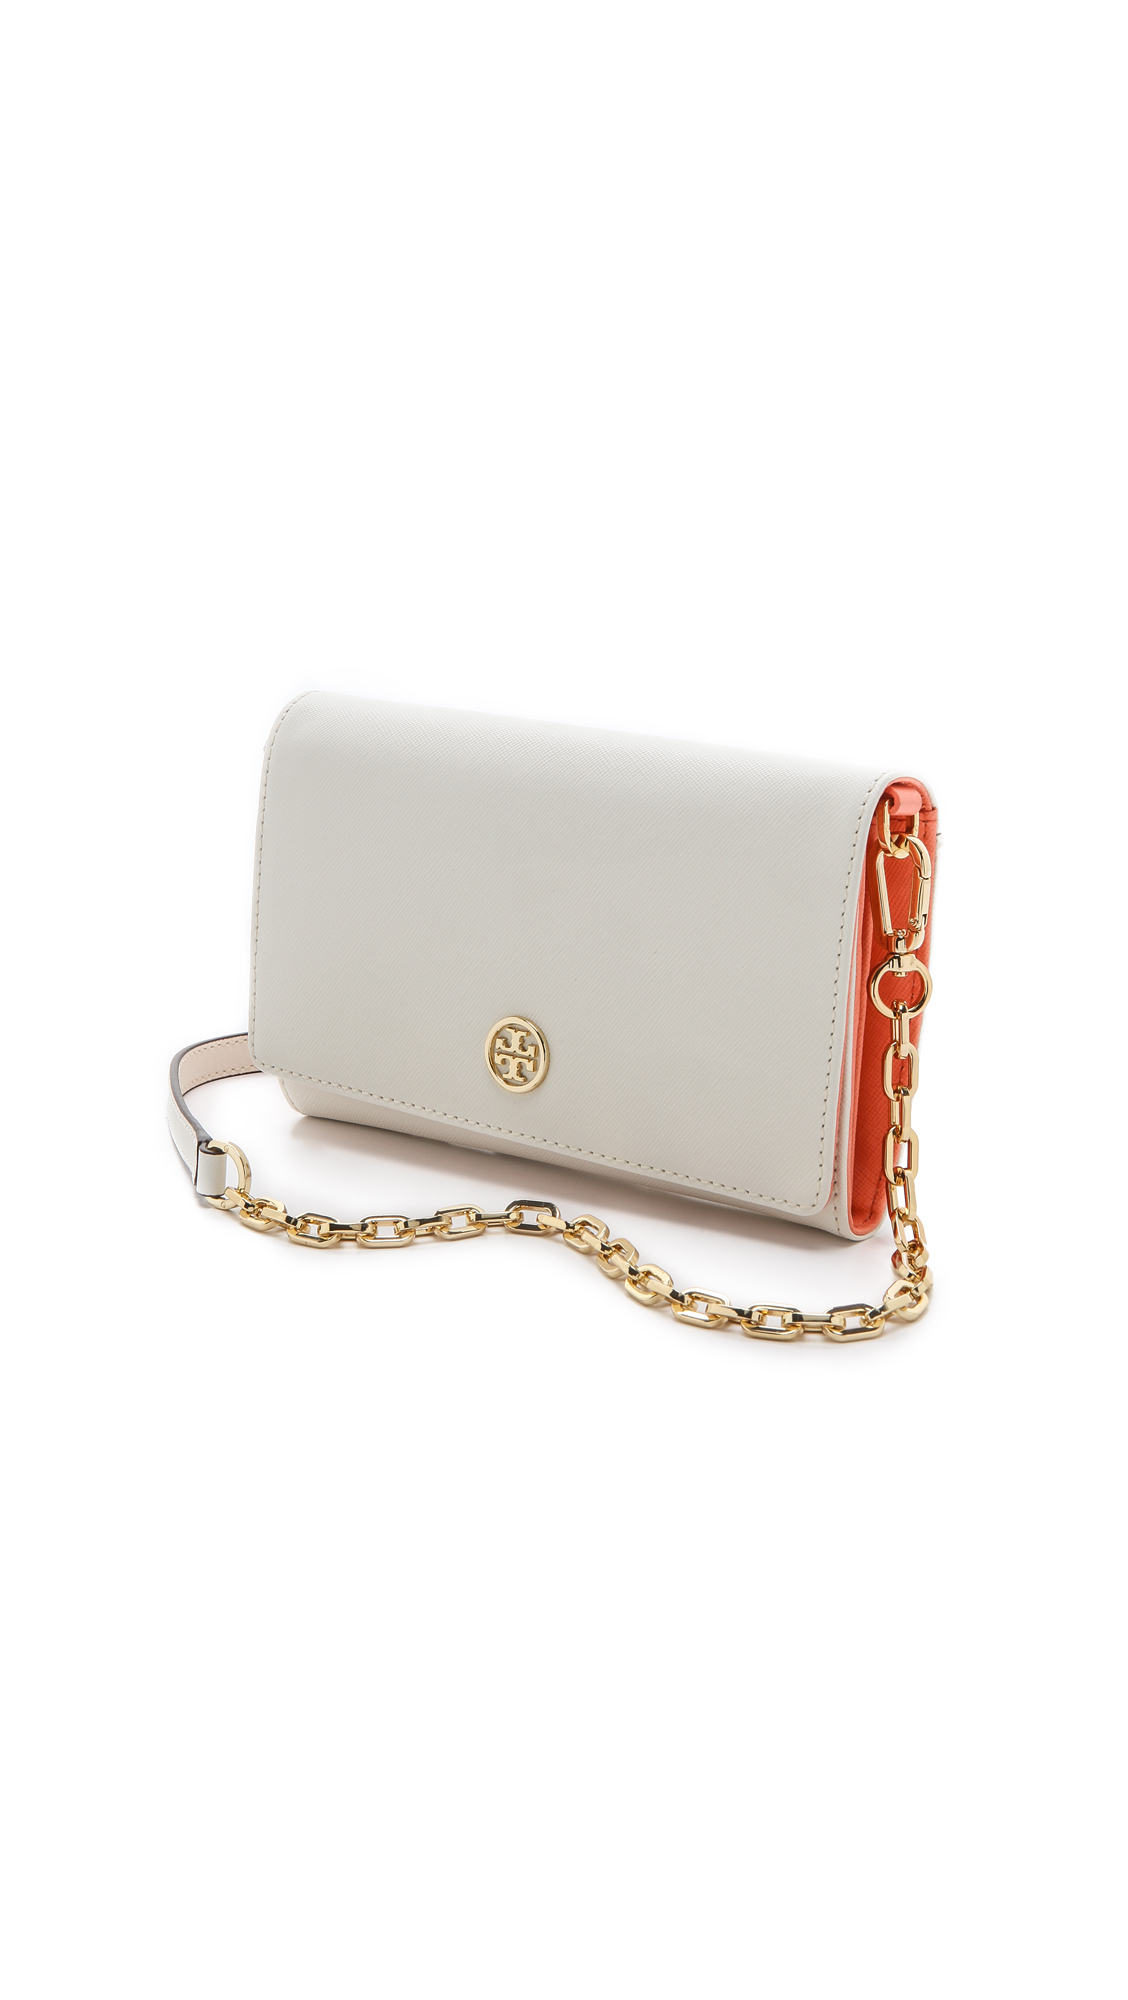 8f94cf049eea ... sale lyst tory burch robinson chain wallet in white e55d4 af722